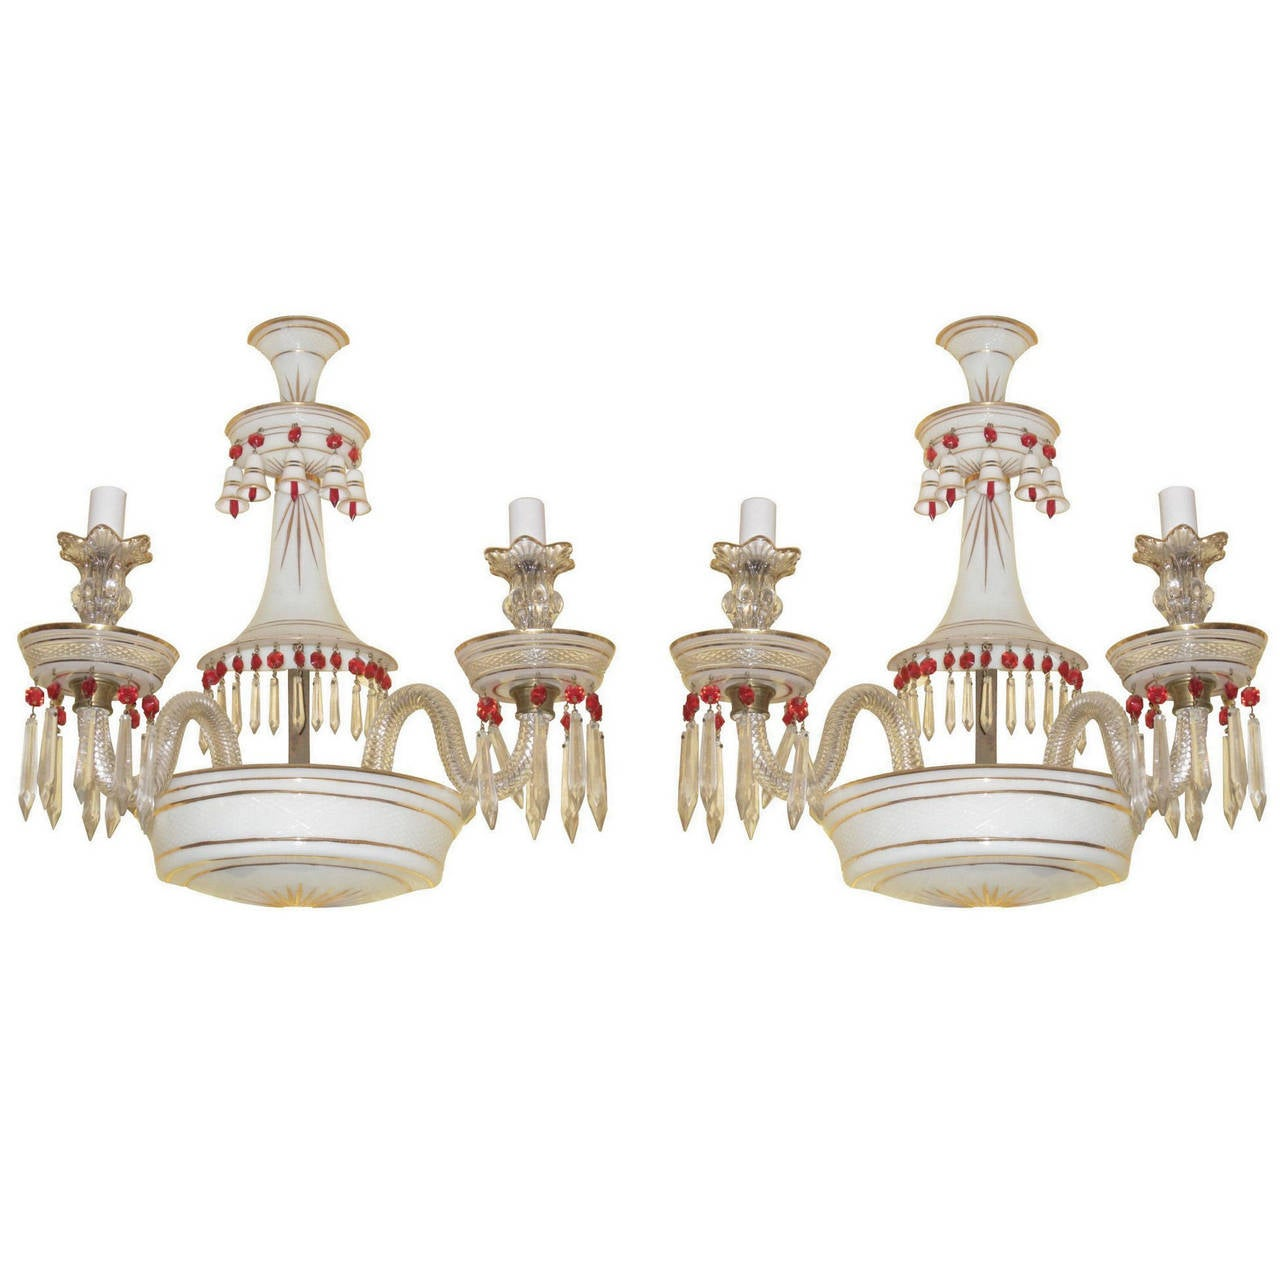 Pair of White Opaline Glass Two-Arm Wall Light Sconces